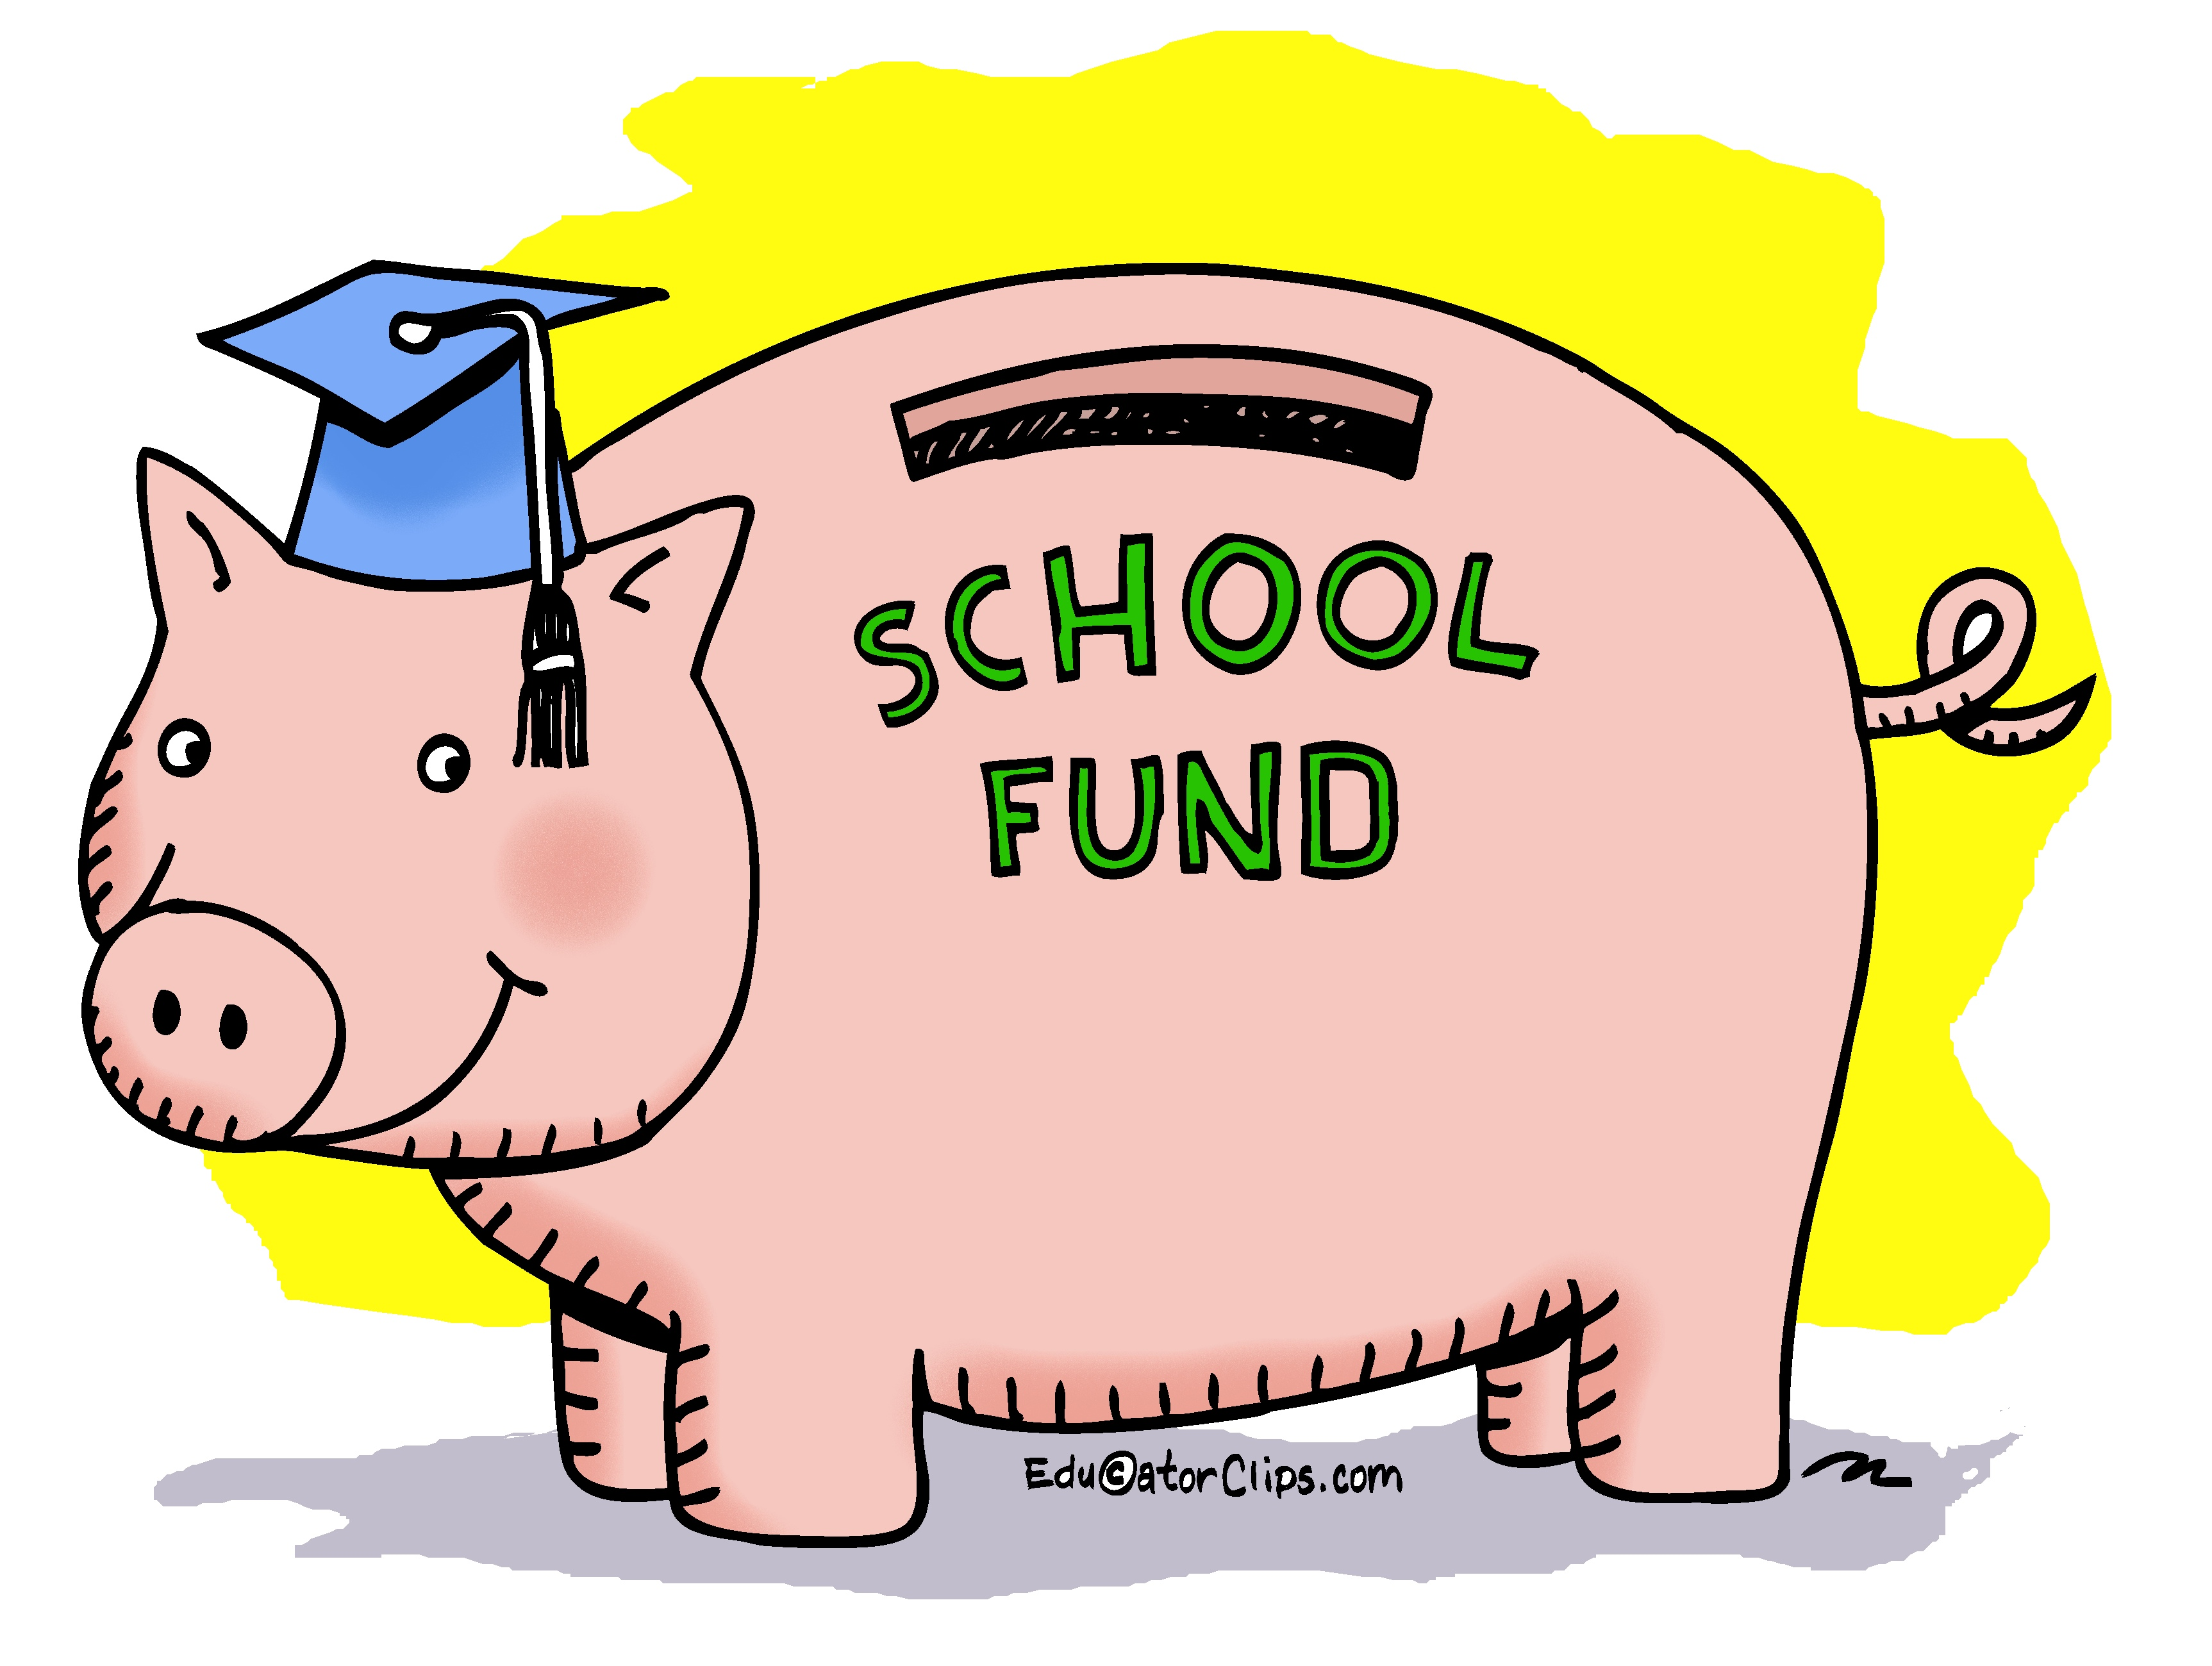 School Fund Pig Bank